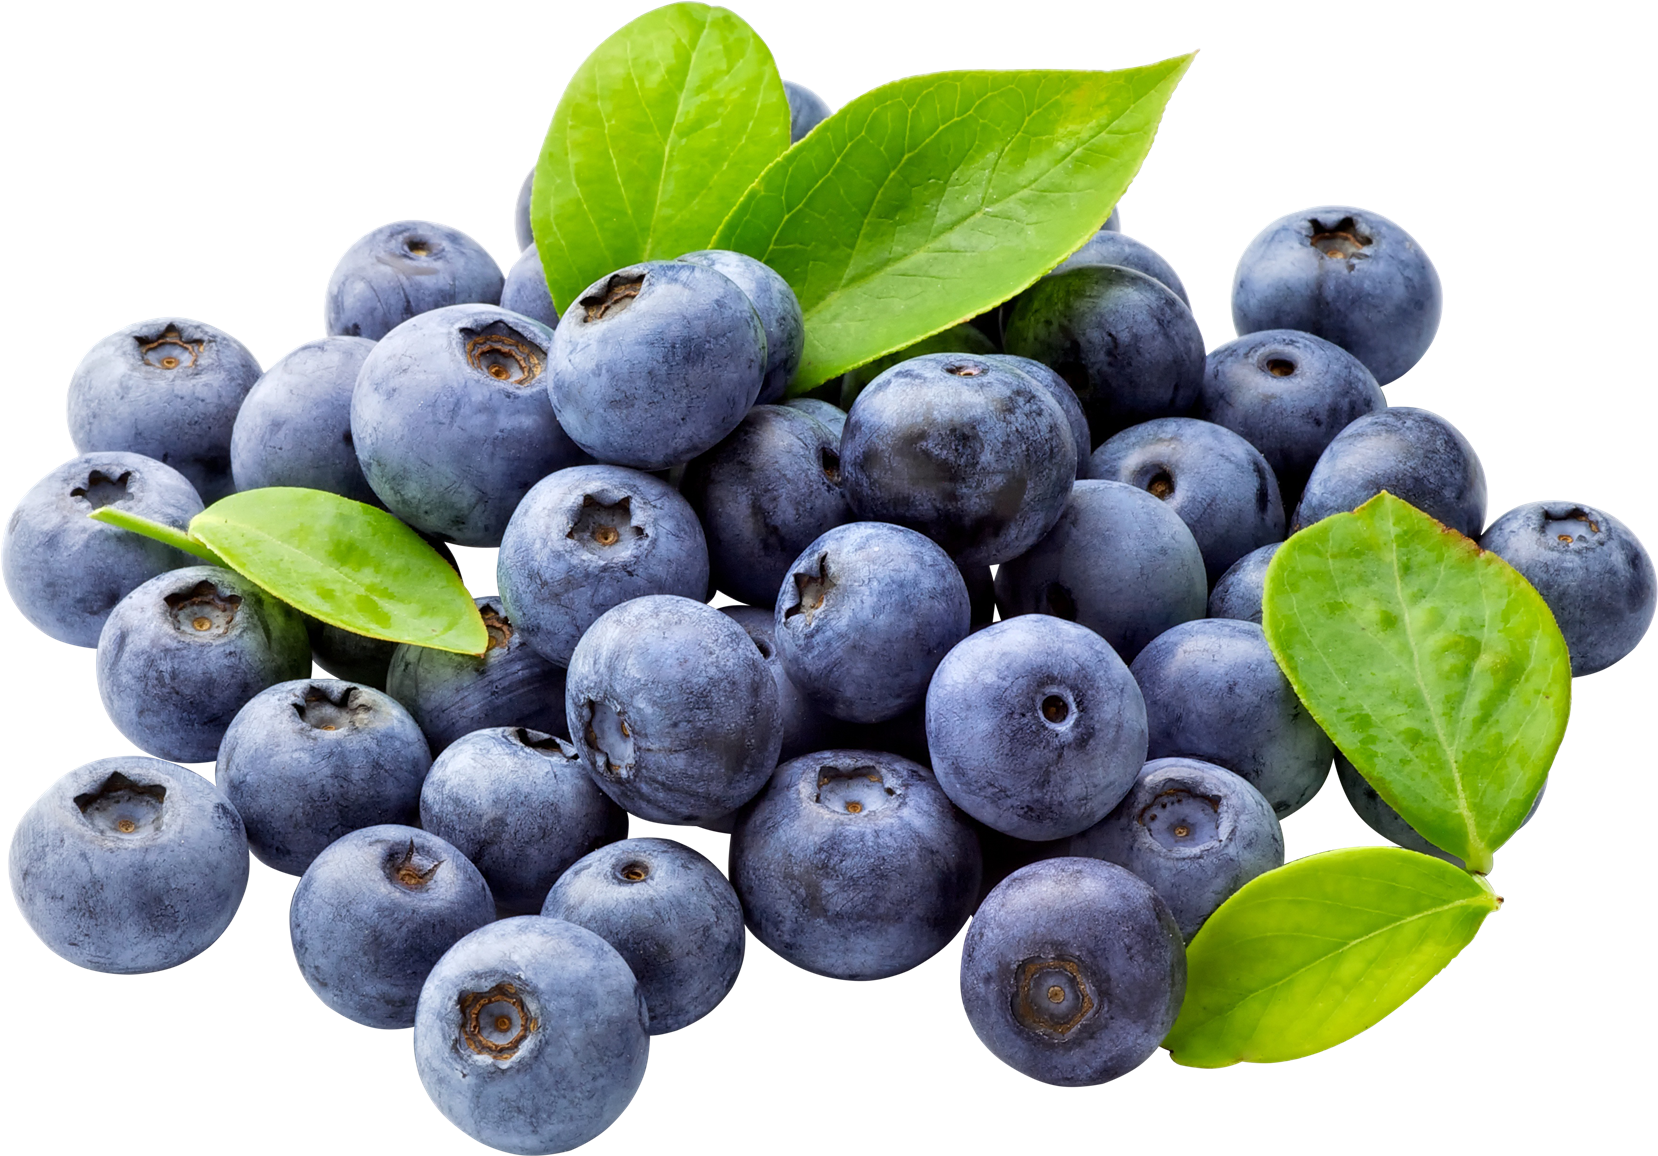 Blueberry clipart huckleberry. Png images transparent free